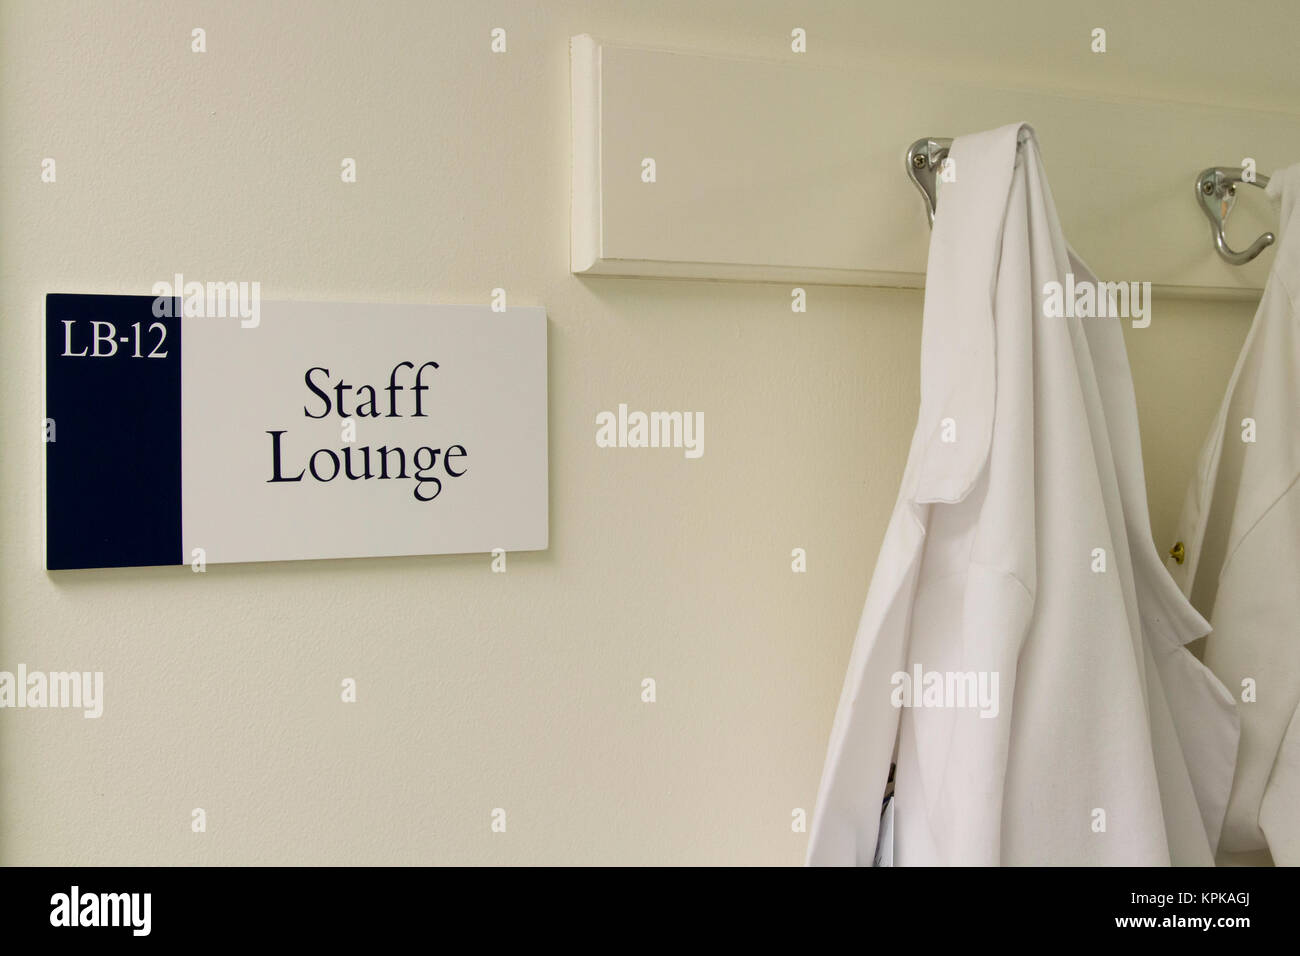 Lab coat at staff lounge in hospital laboratory. - Stock Image